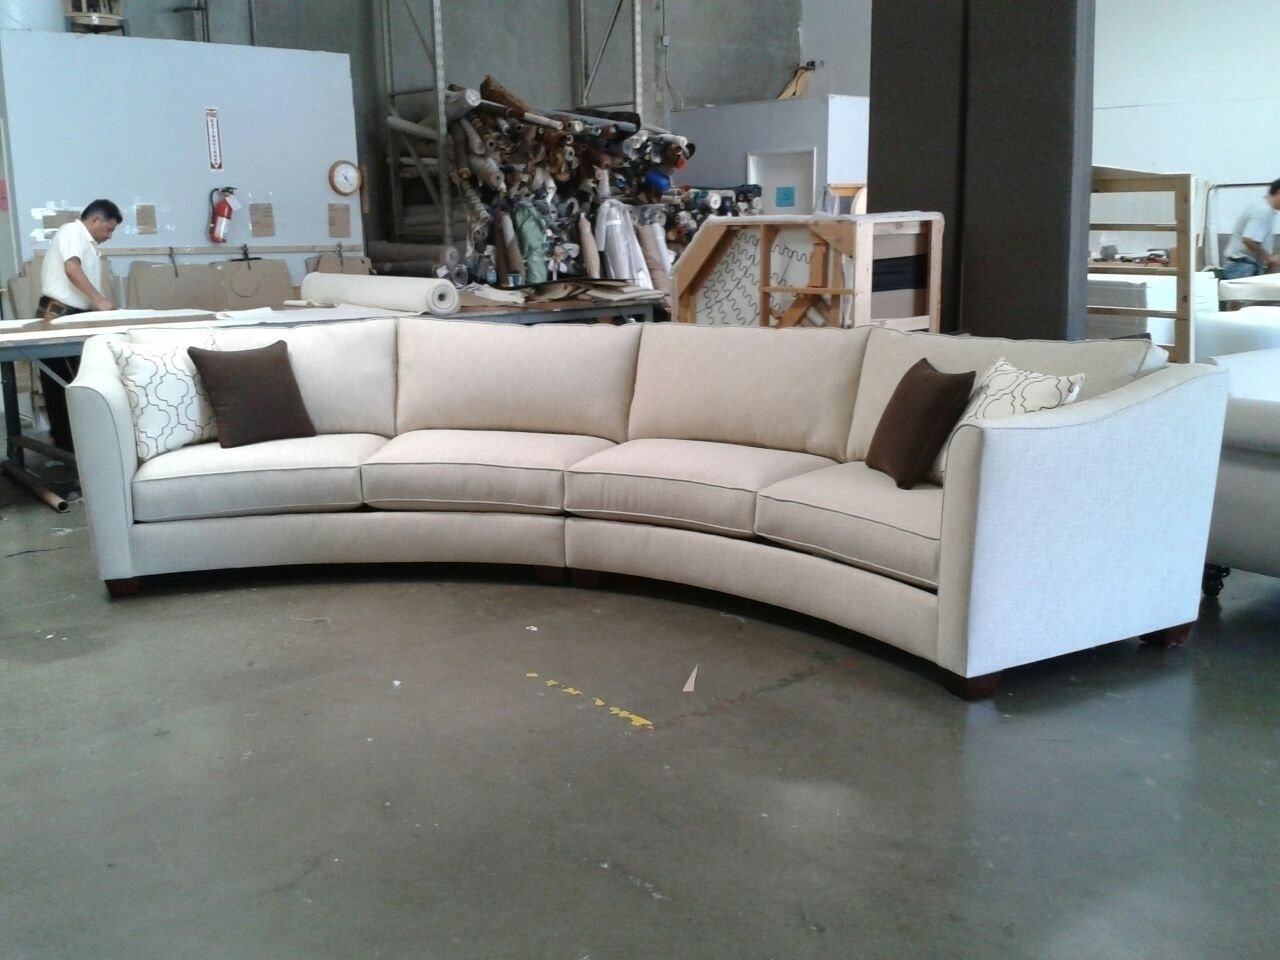 Curved Sectional Sofa Design — Cabinets, Beds, Sofas And Intended For Rounded Sofas (View 5 of 10)